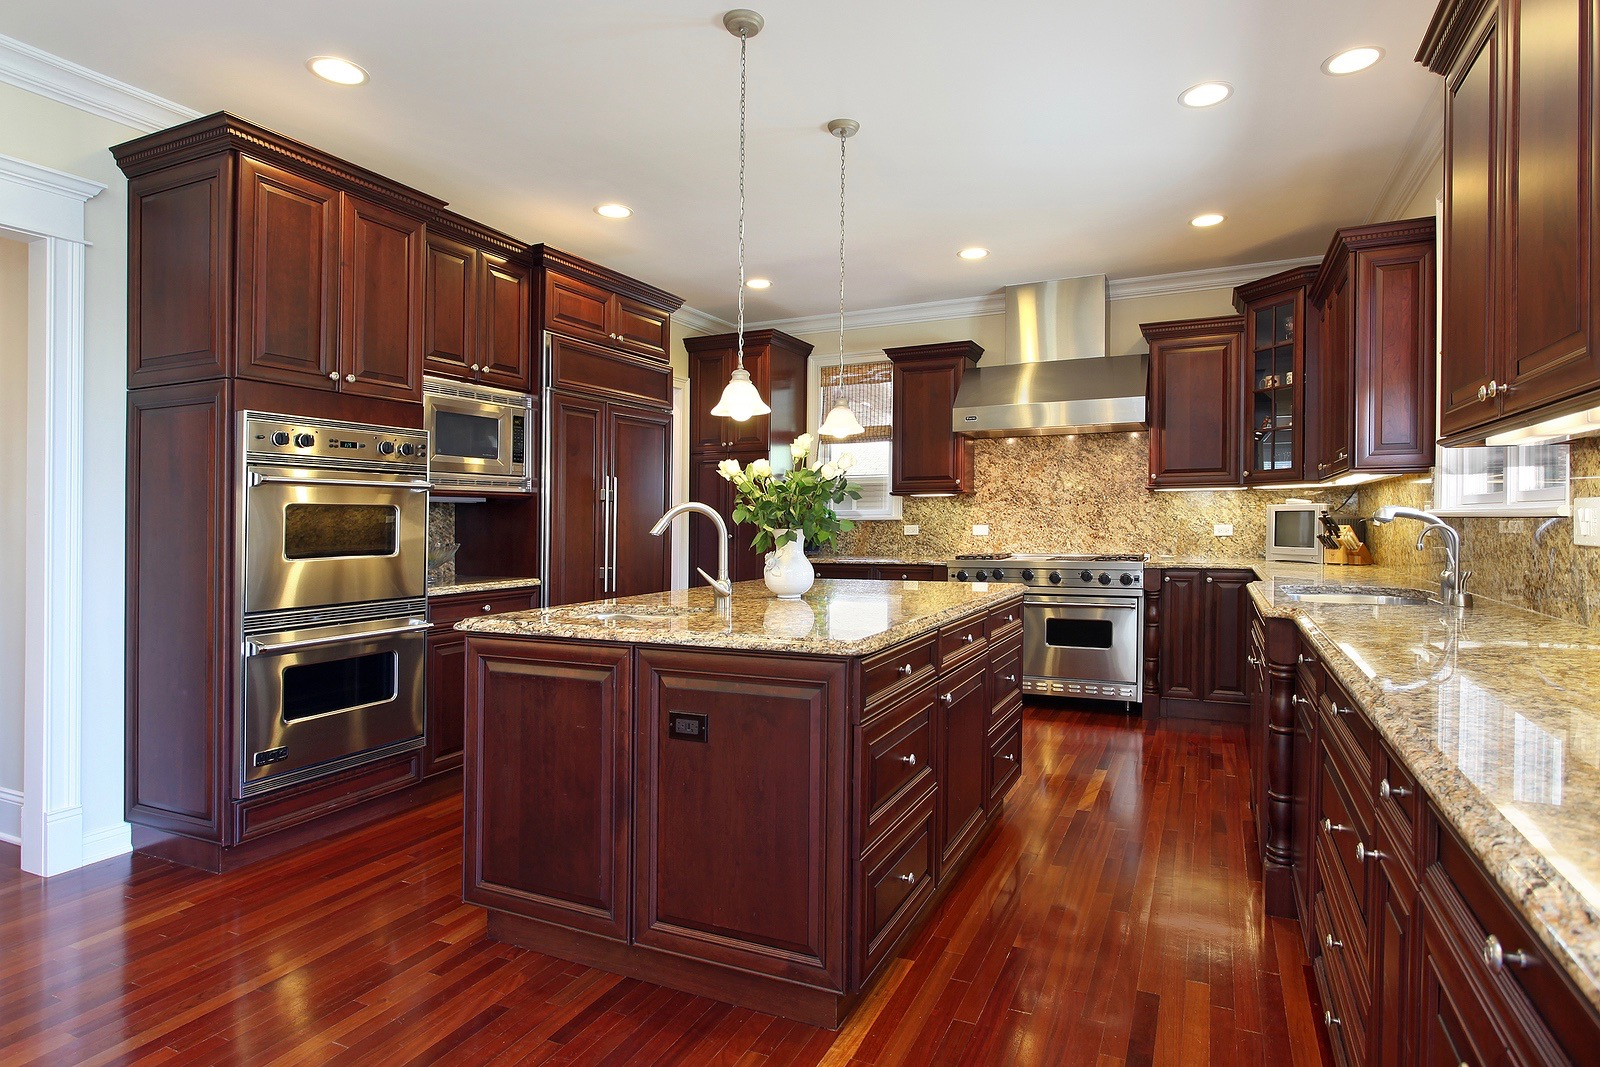 Kitchens can be the heart of a home, check out what some popular kitchens are using today.